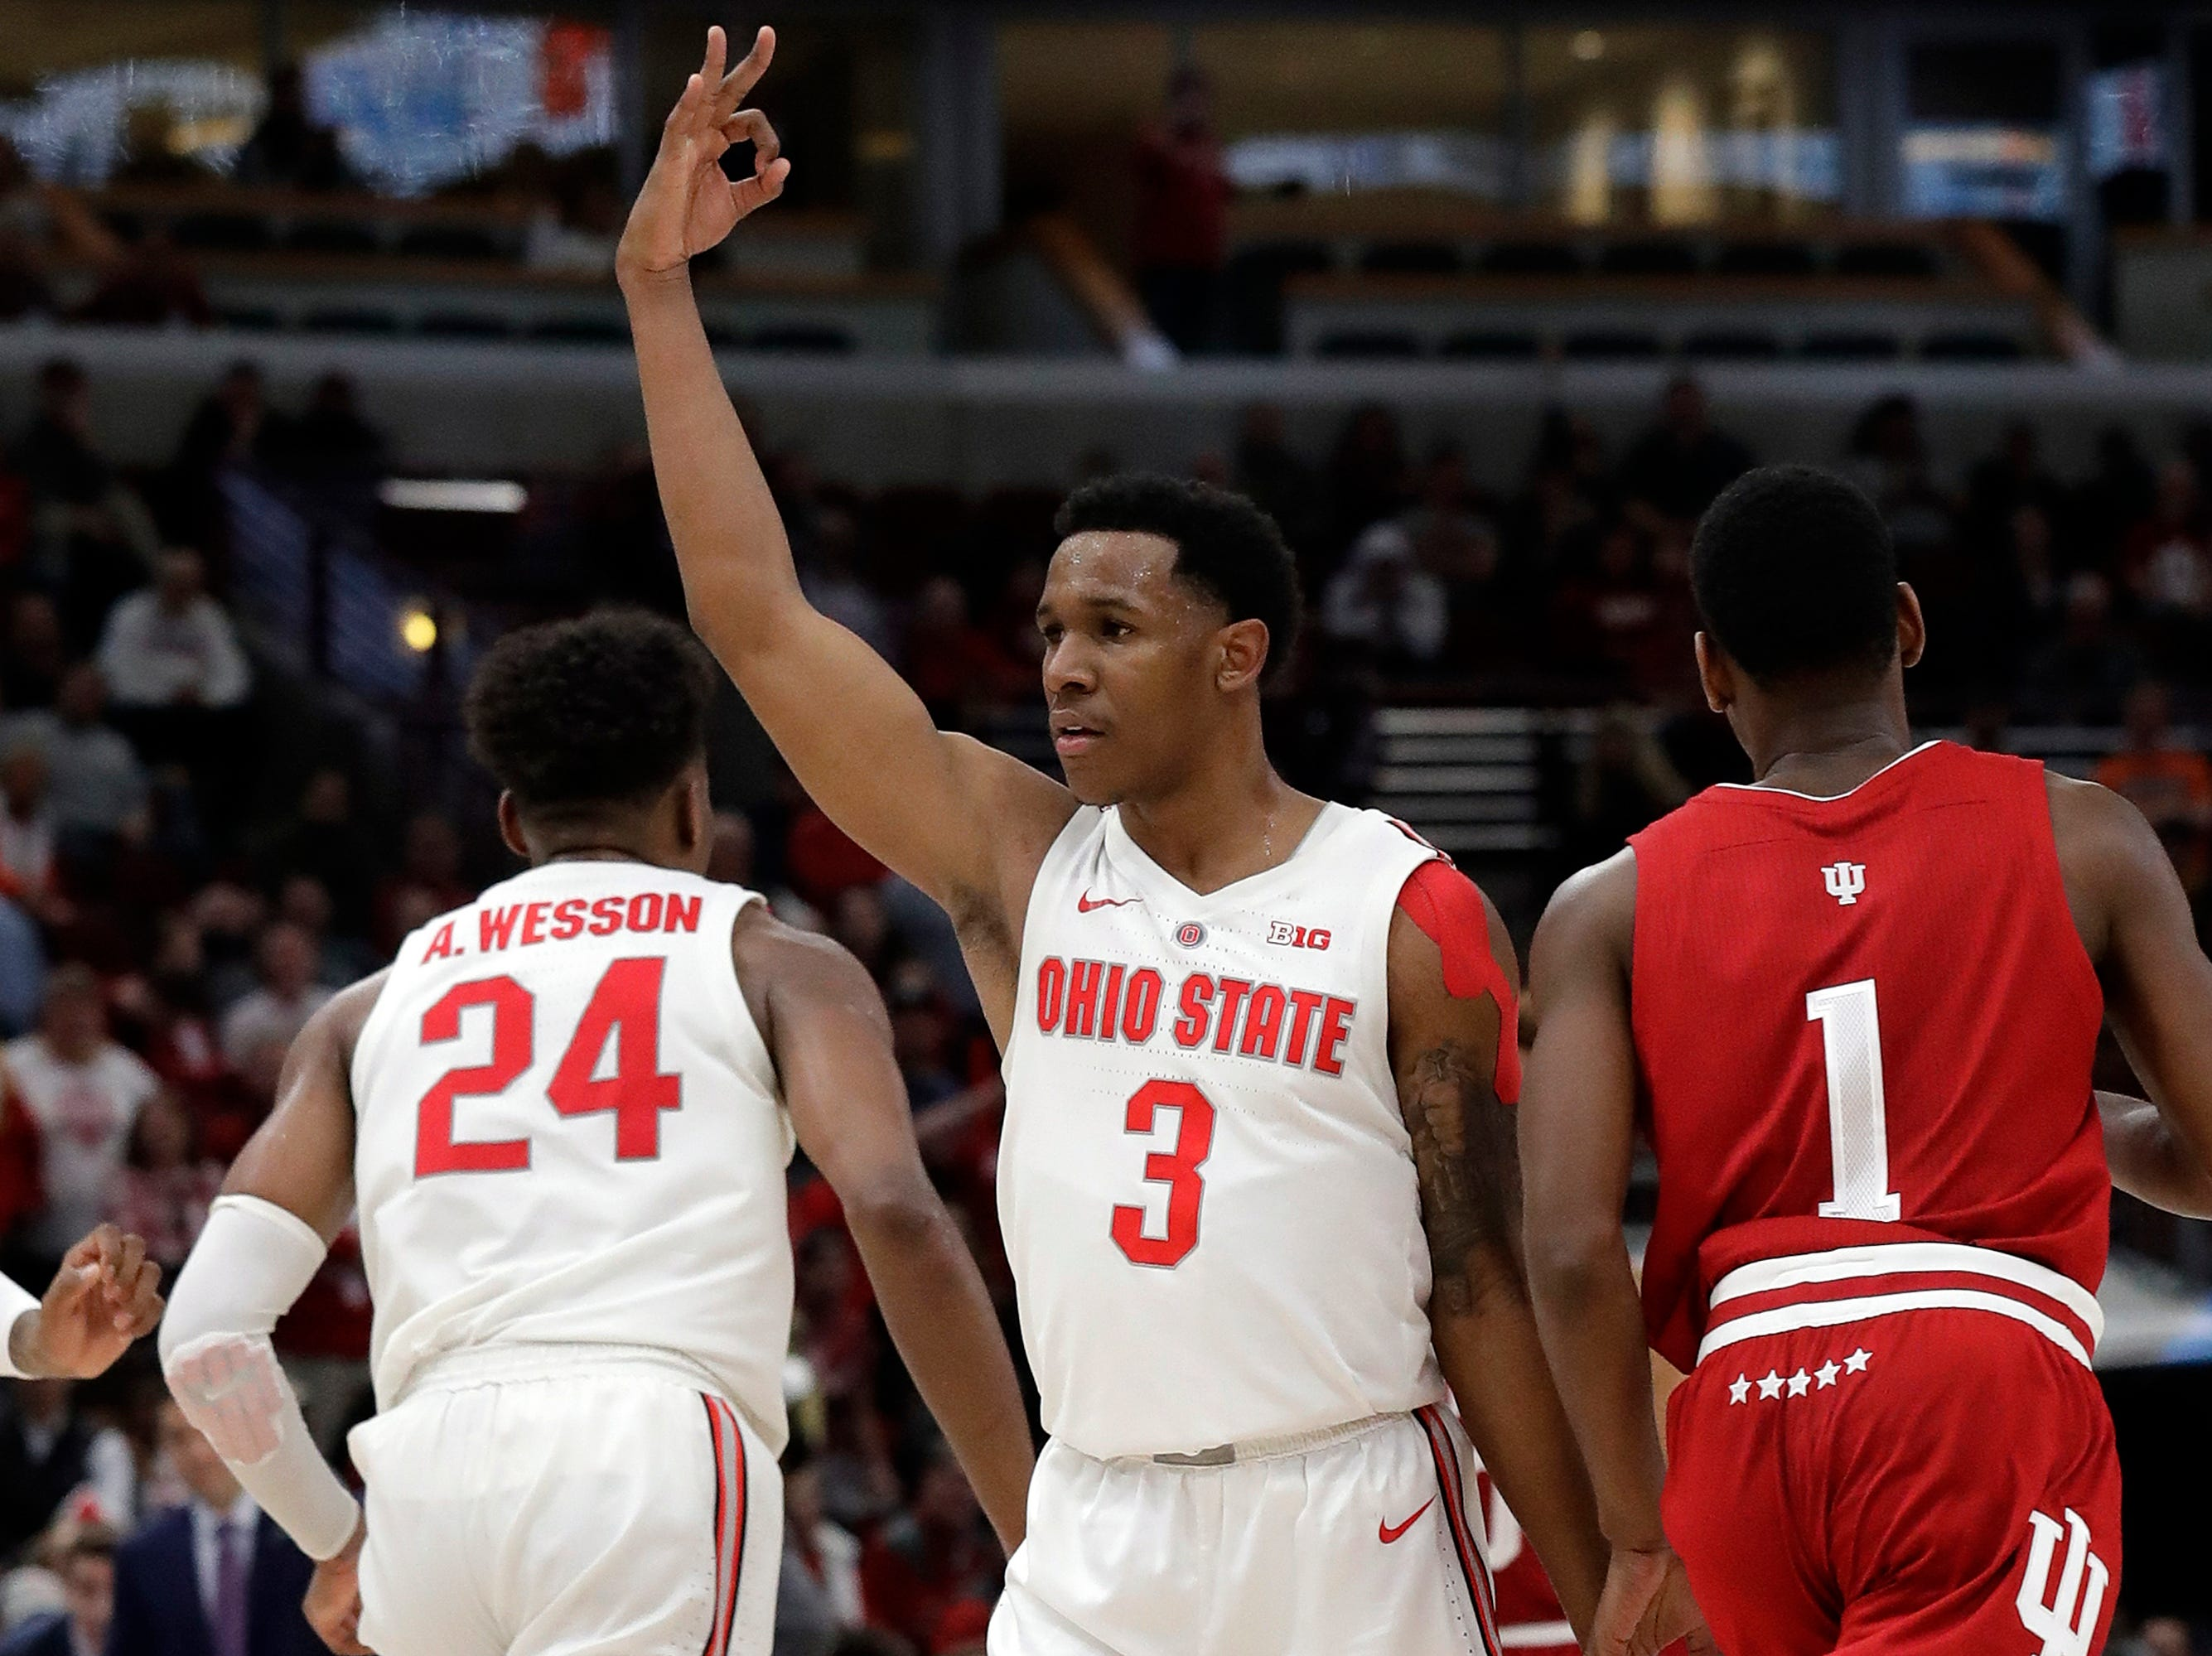 Ohio State's C.J. Jackson (3) reacts after making a 3-point basket during the second half of an NCAA college basketball game against the Indiana in the second round of the Big Ten Conference tournament, Thursday, March 14, 2019, in Chicago. The Ohio State won 79-75. (AP Photo/Nam Y. Huh)